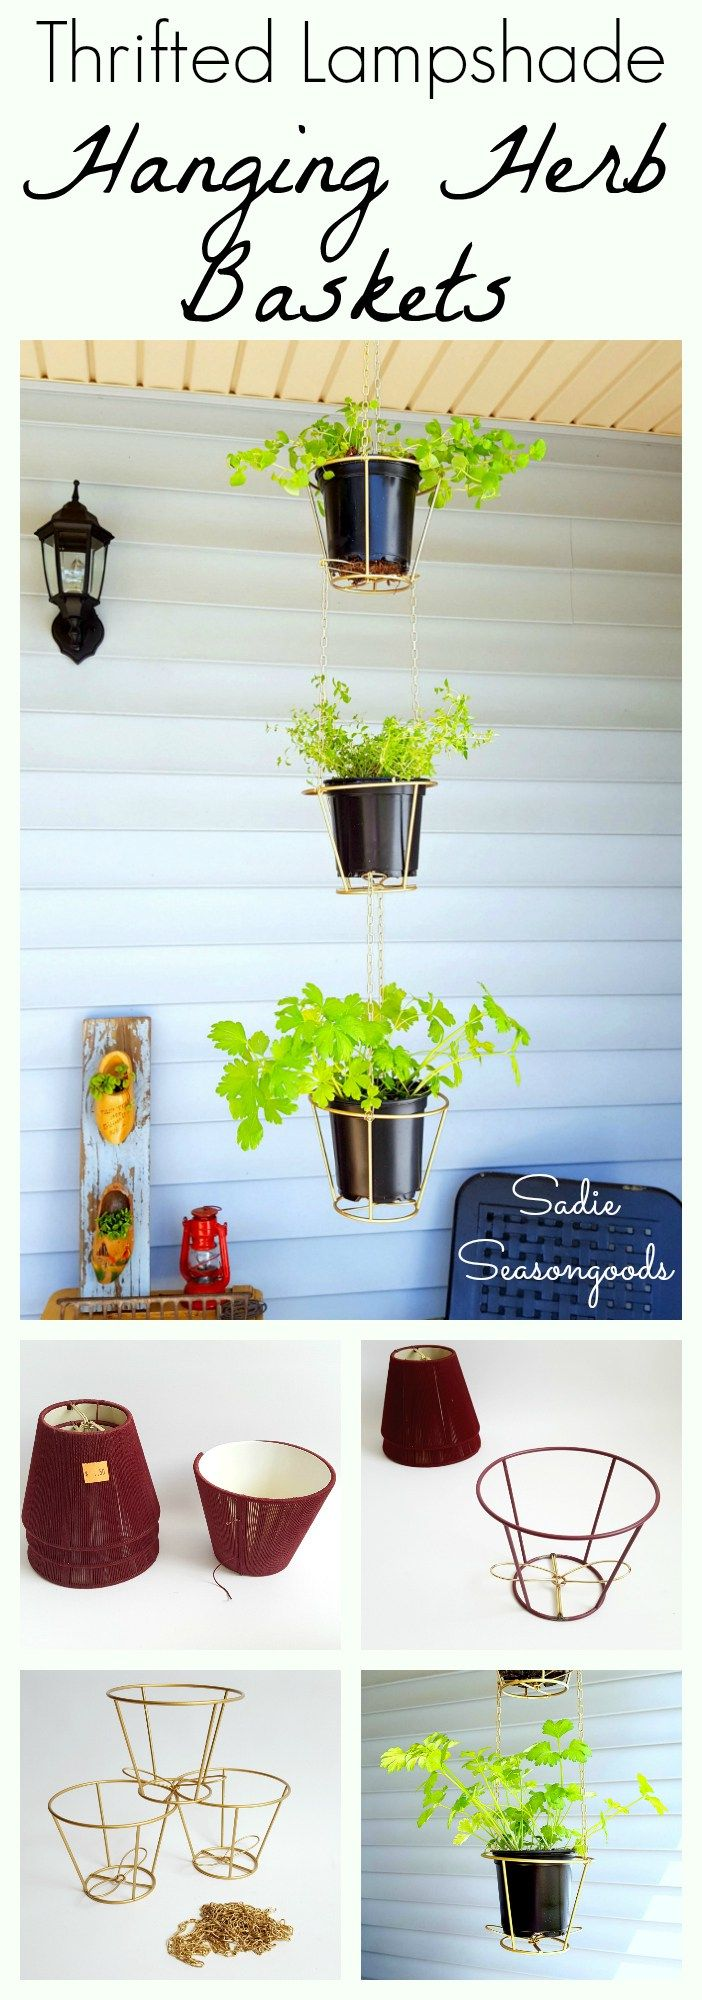 How to turn old vintage lampshades into hanging baskets for herbs and plants by Sadie Seasongoods / www.sadieseasongoods.com